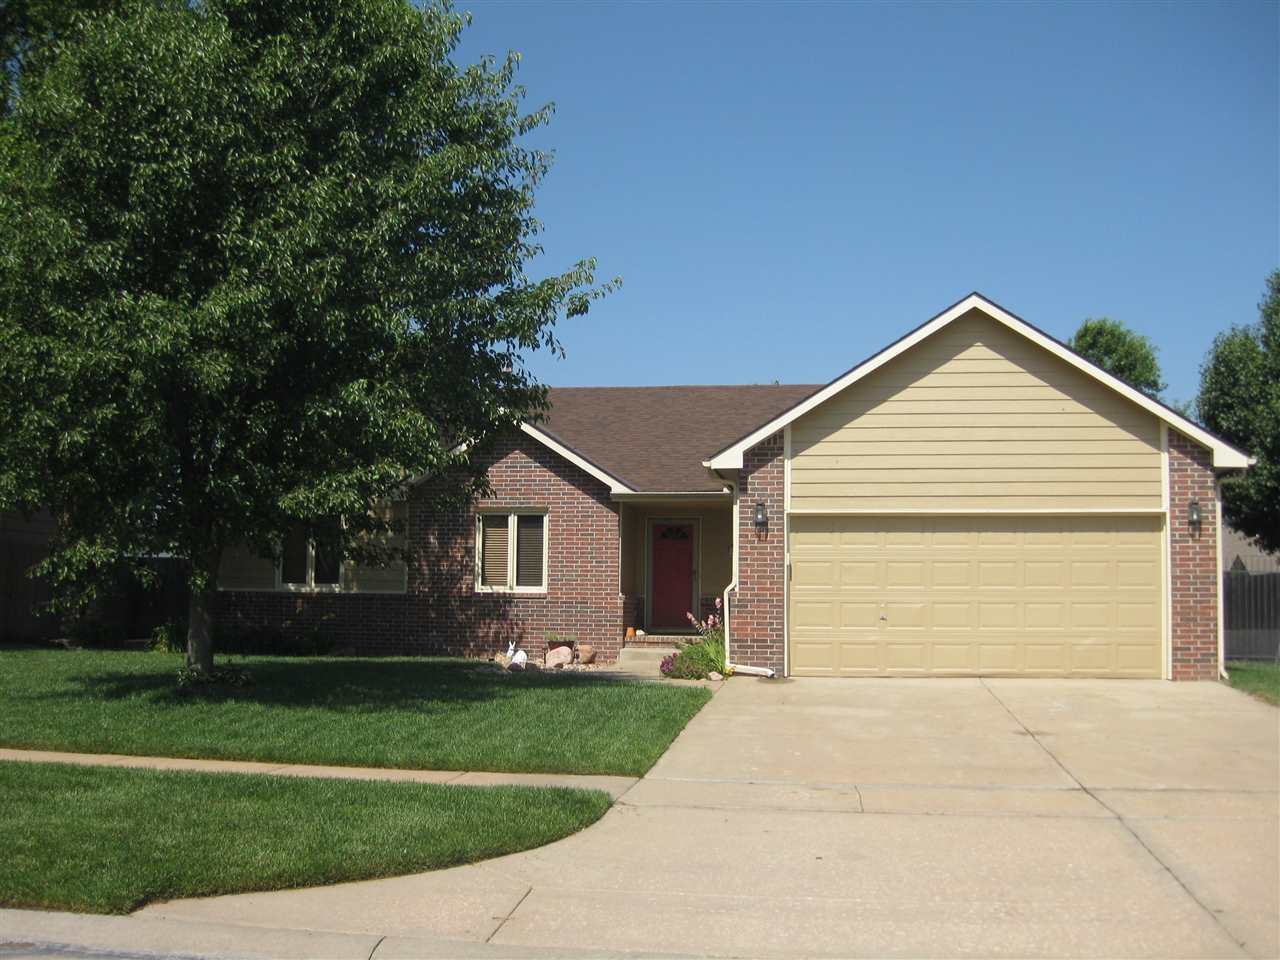 1833 S Milstead, Wichita, KS 67209